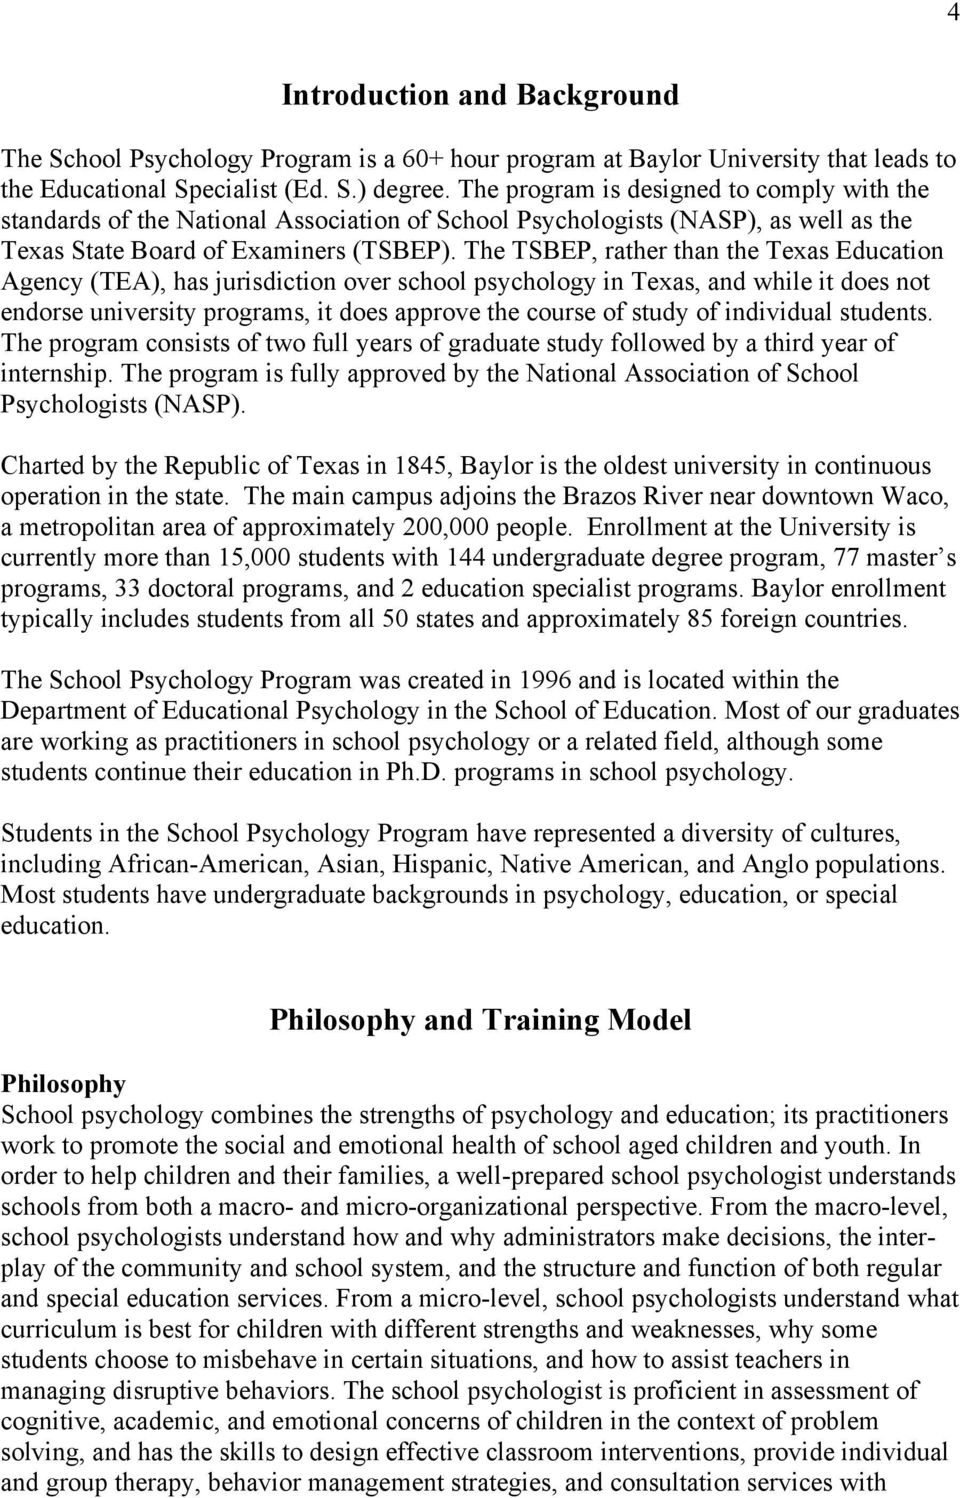 The TSBEP, rather than the Texas Education Agency (TEA), has jurisdiction over school psychology in Texas, and while it does not endorse university programs, it does approve the course of study of